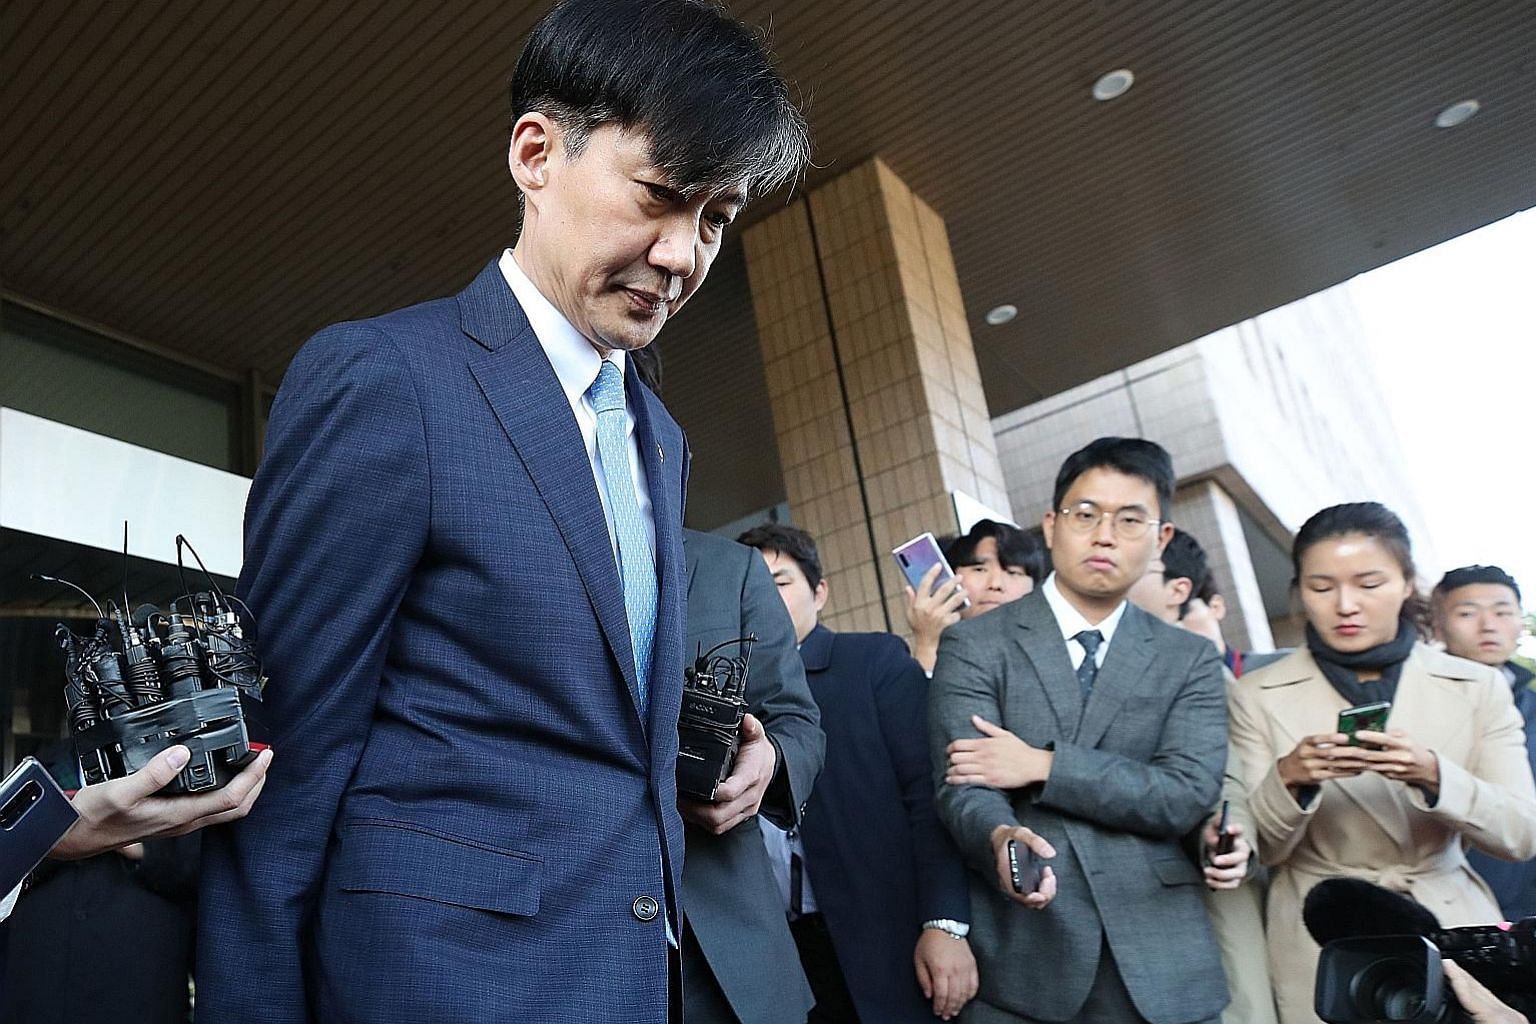 South Korean justice minister Cho Kuk leaving the ministry in Gwacheon, south of Seoul, yesterday. The 54-year-old quit as a scandal swirled over academic privileges allegedly given to his children.